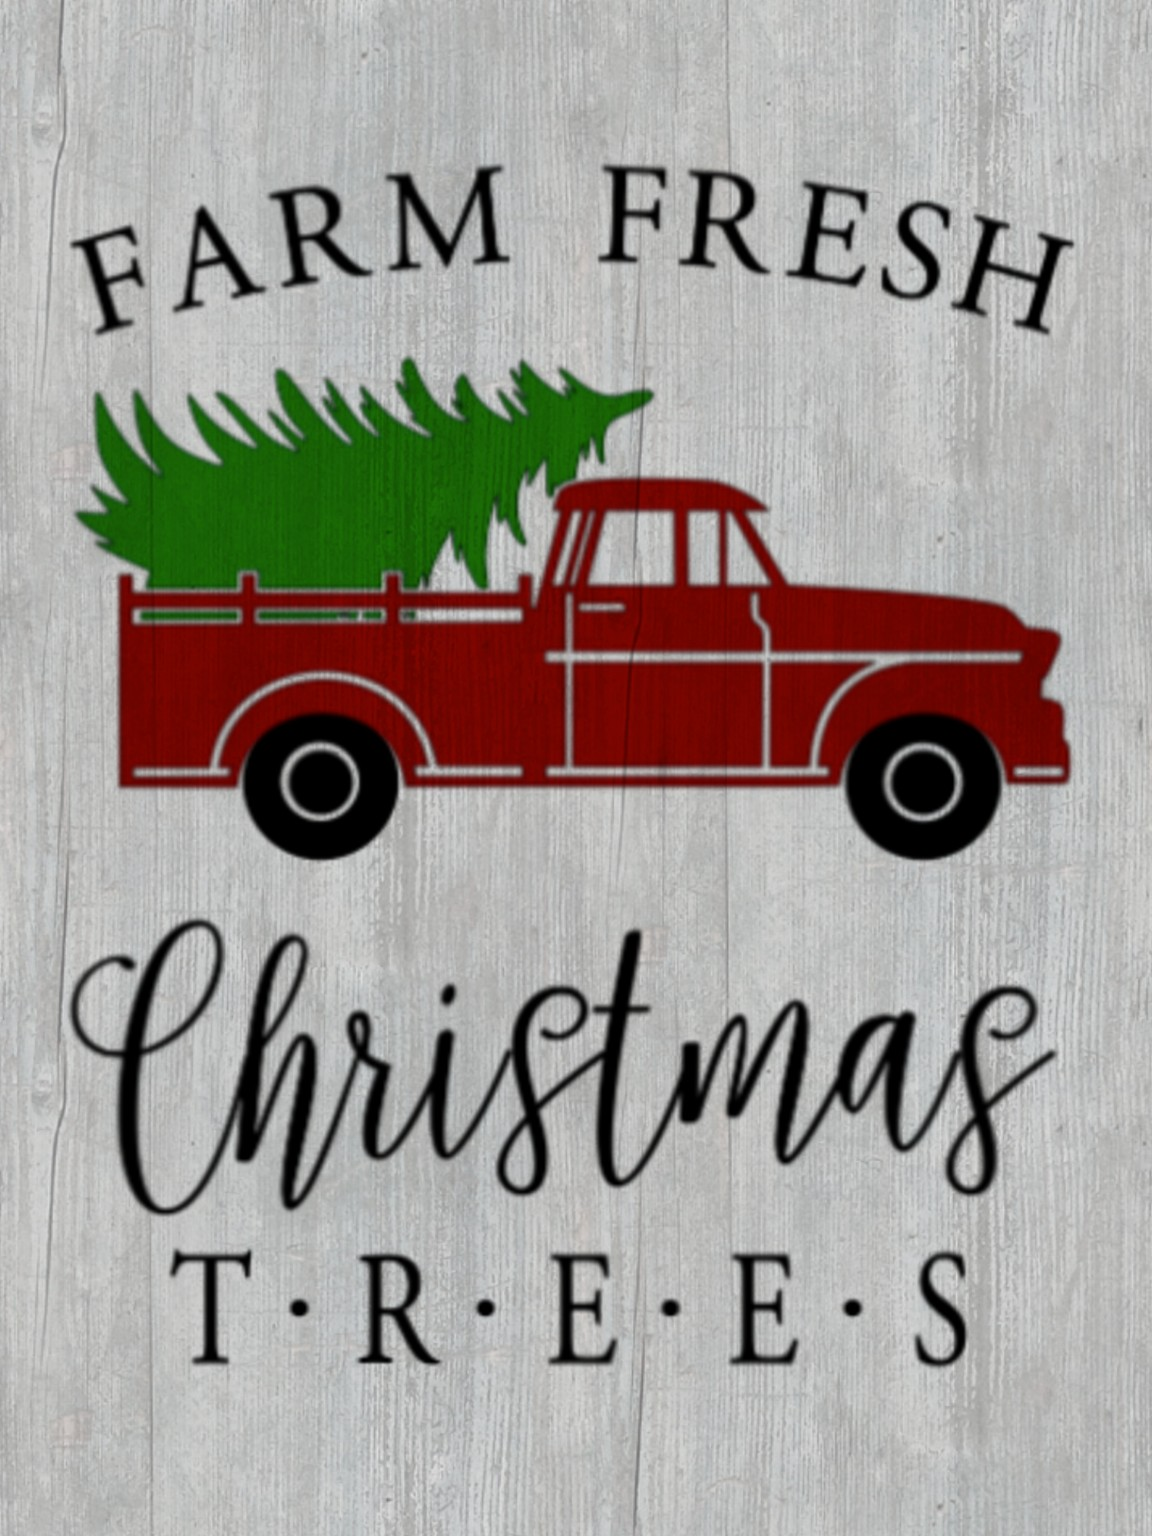 ChristmasTrees-Truck